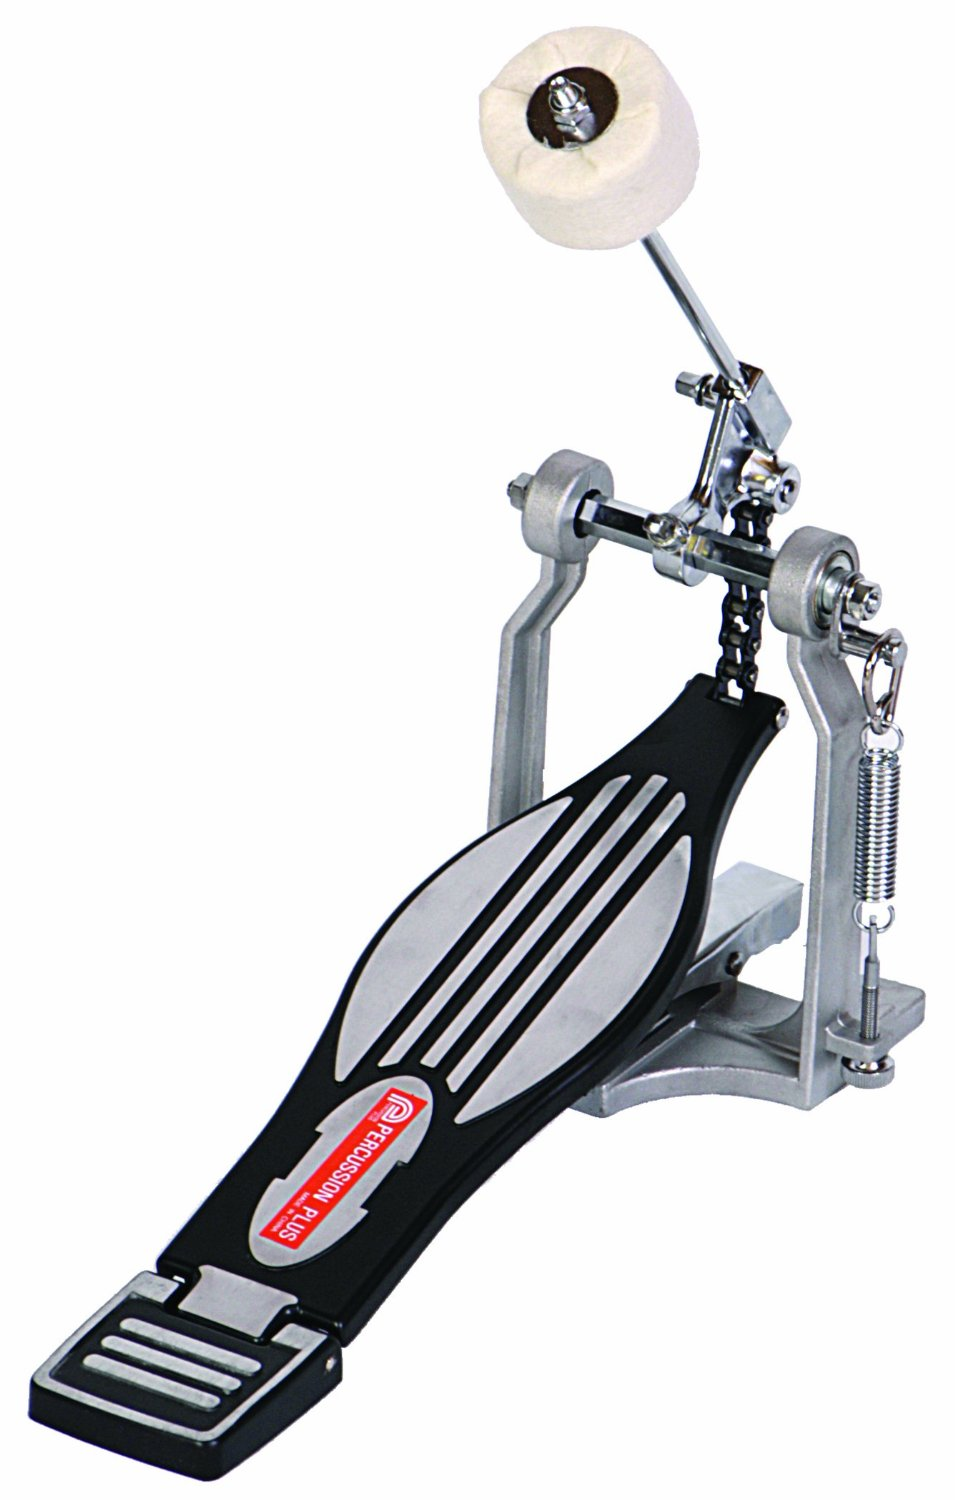 Bass Drum Pedal - Percussion Plus